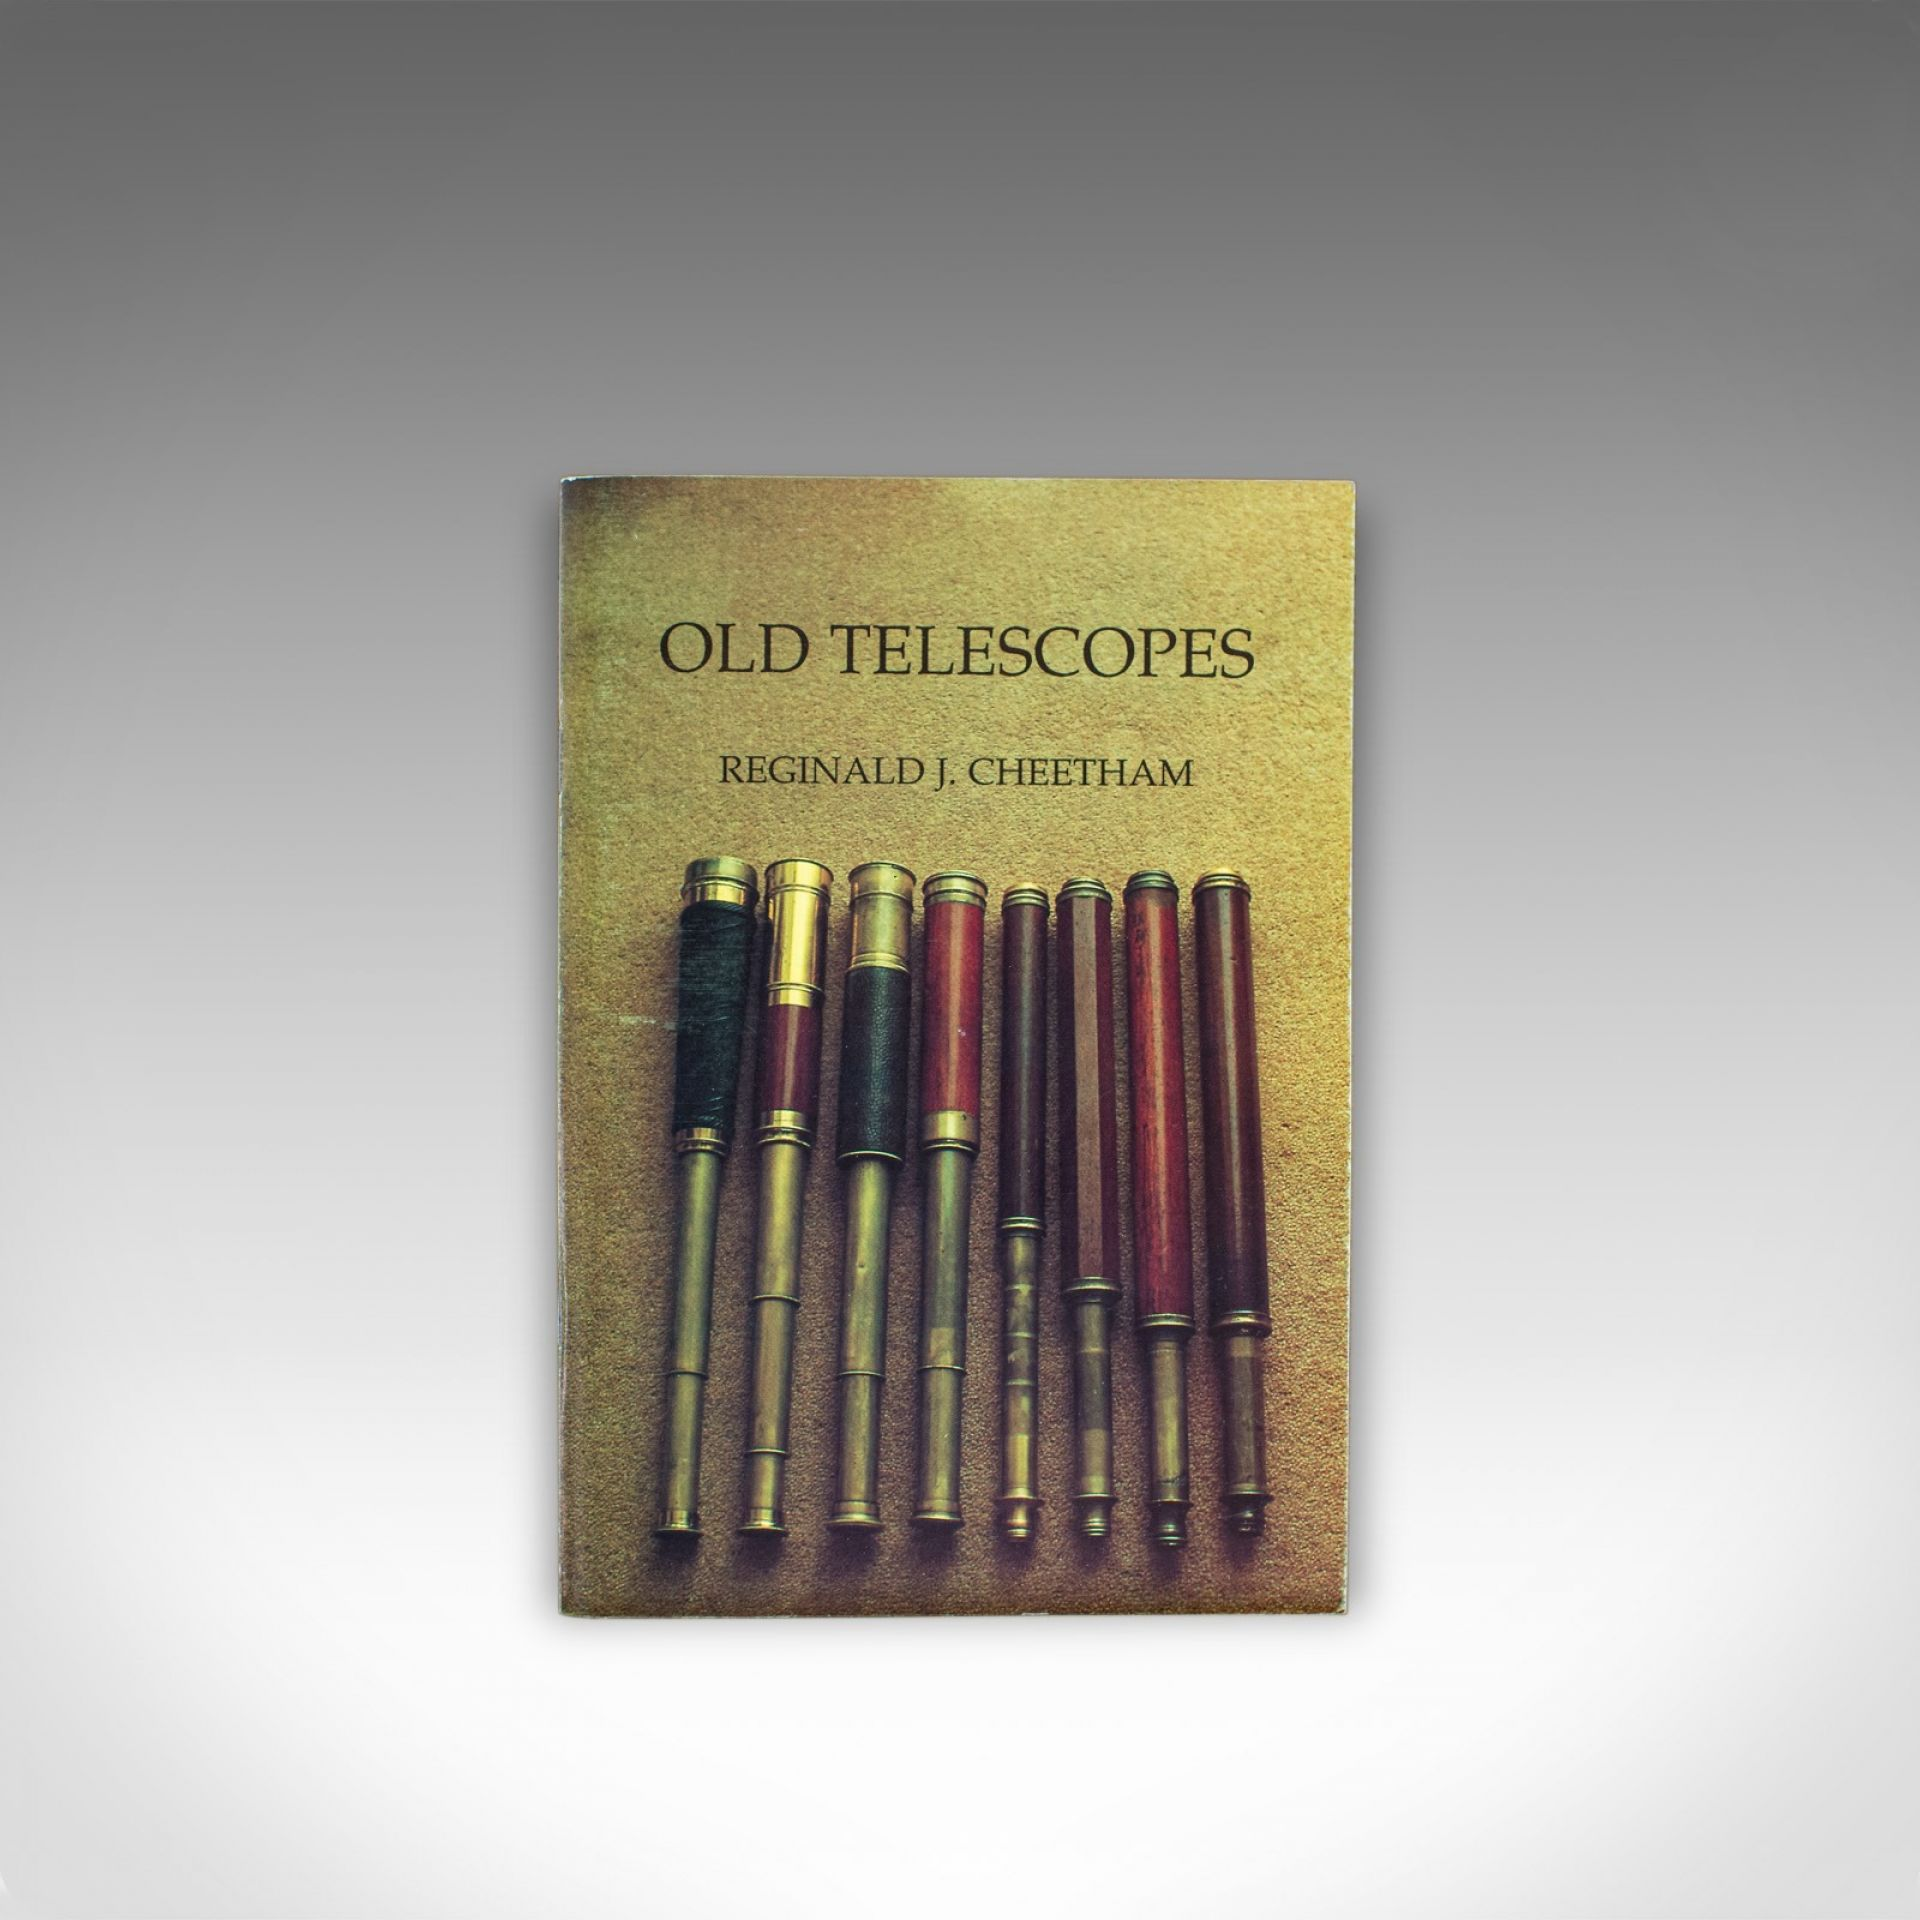 Old Telescopes by Reginald J. Cheetham, Scientific Instrument Book December 1997